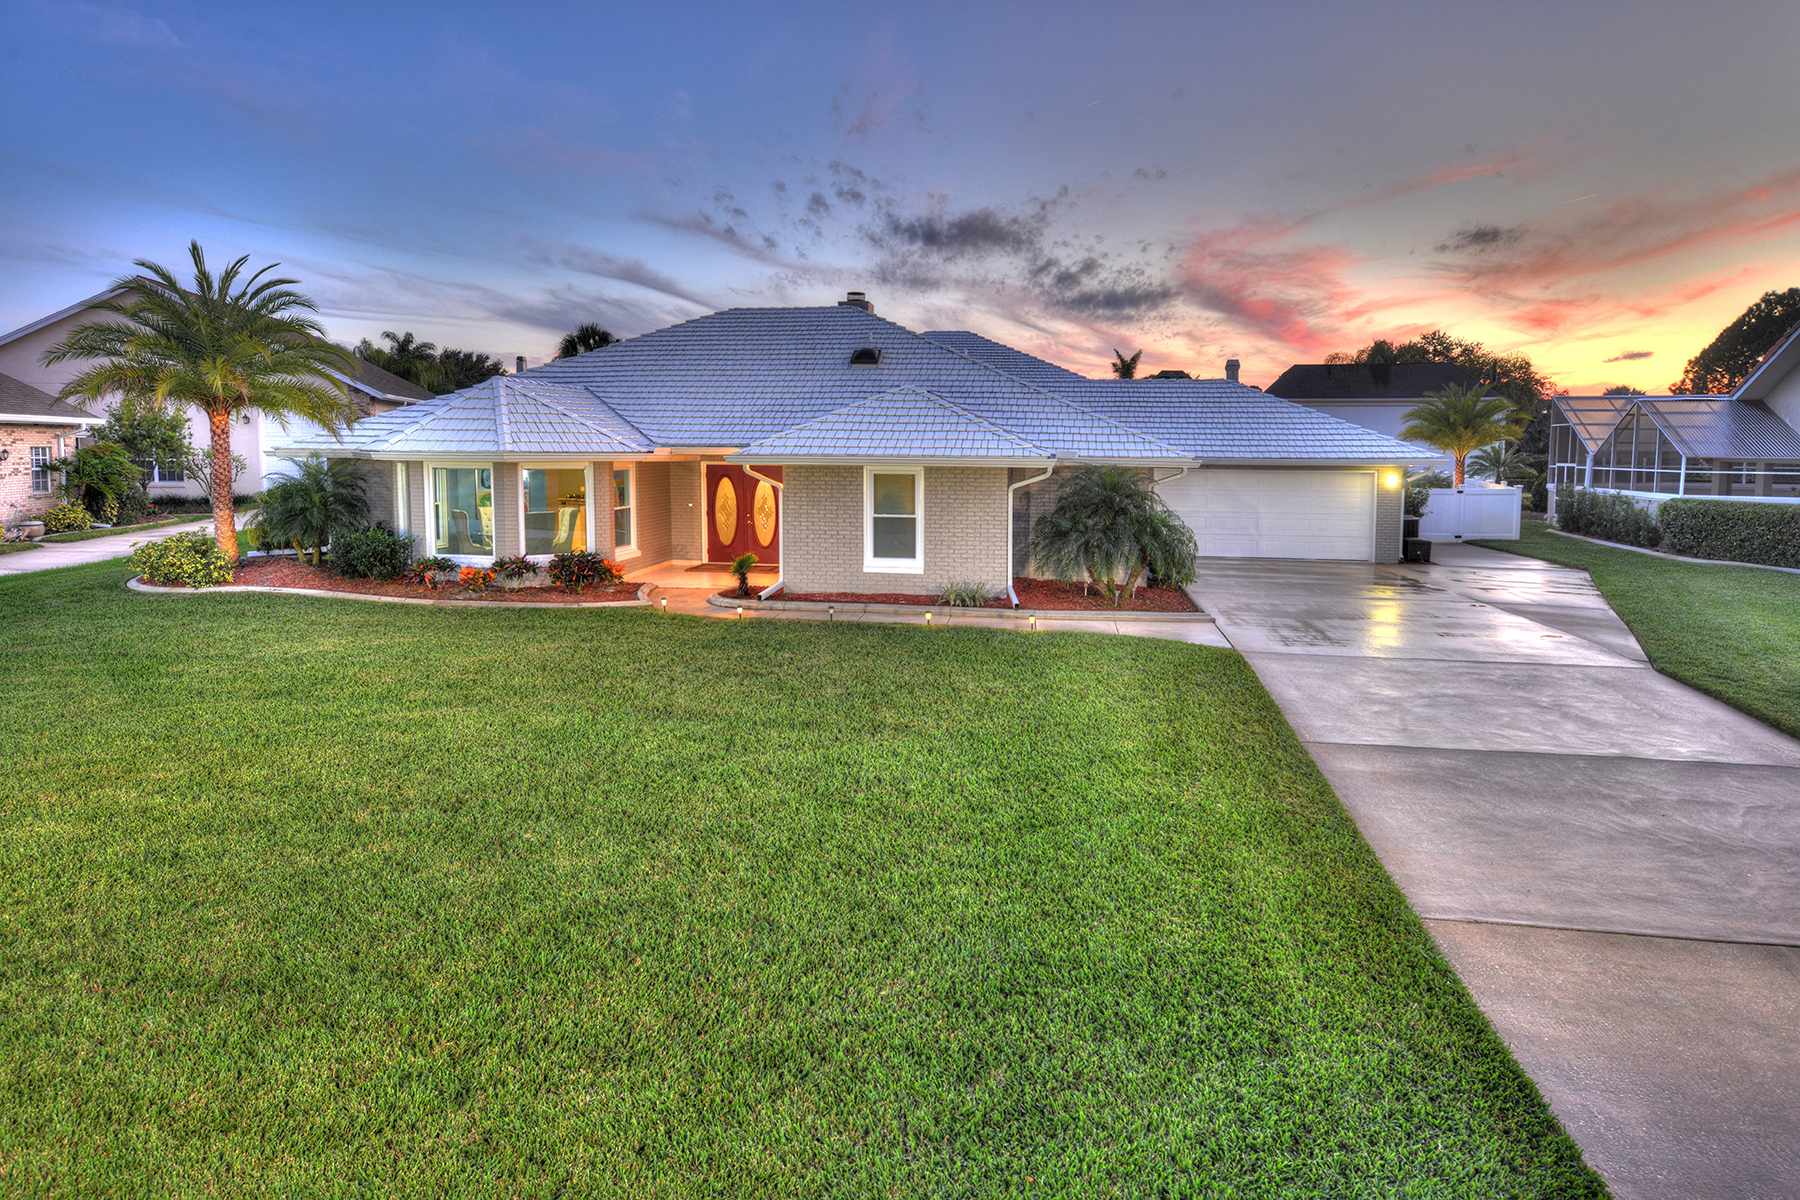 Single Family Home for Sale at PORT ORANGE AND THE BEACHES 2673 Slow Flight Dr, Port Orange, Florida 32128 United States